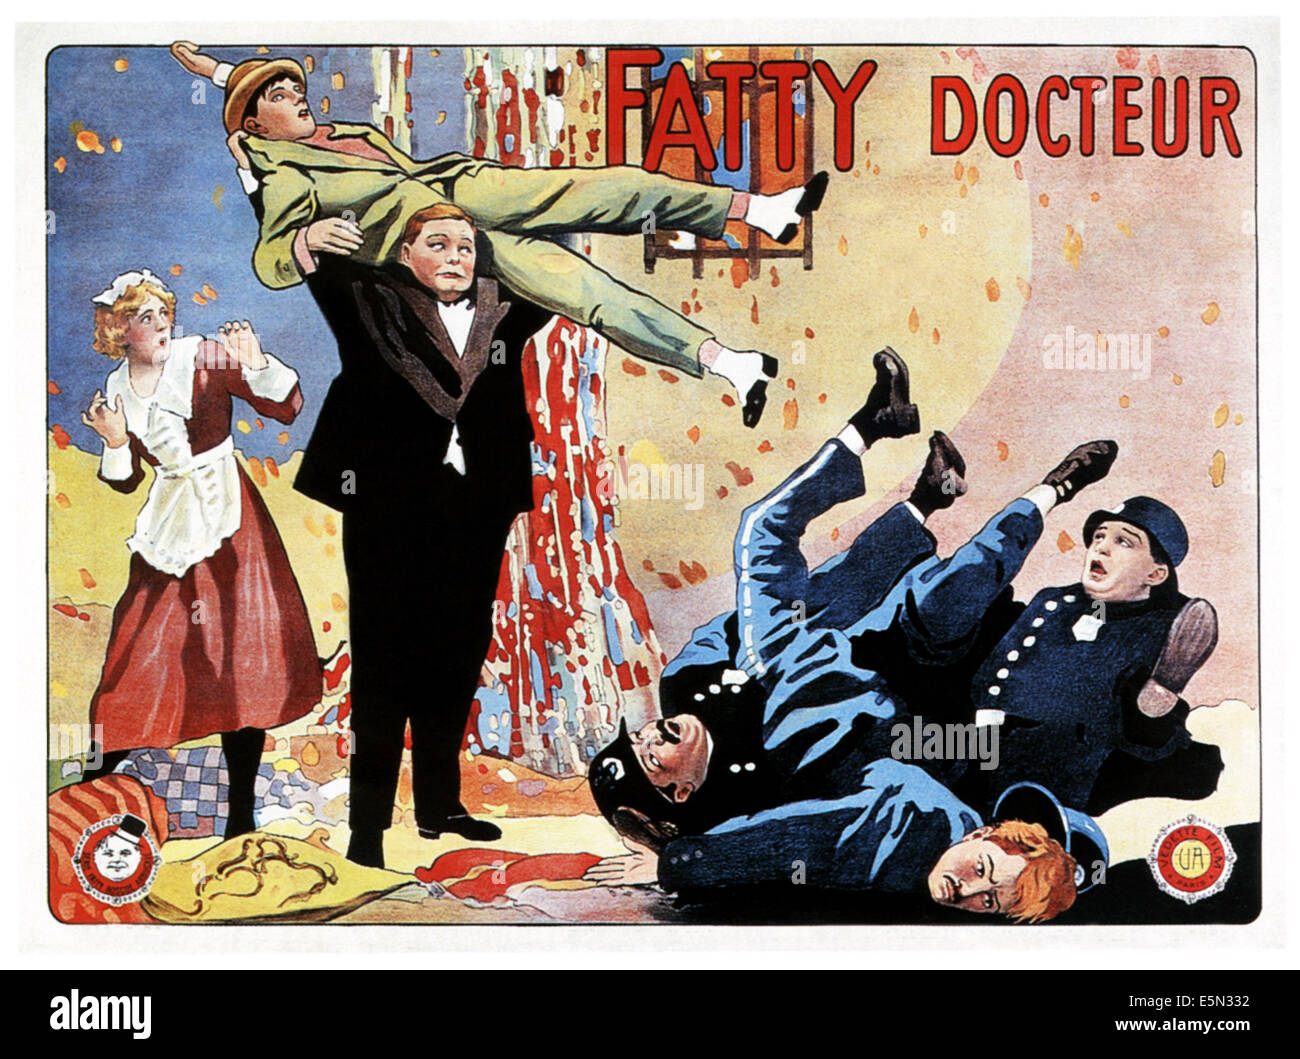 OH DOCTOR! (aka FATTY DOCTEUR), left: Alice Lake, center from top: Buster Keaton, Roscoe 'Fatty' Arbuckle' - Stock Image